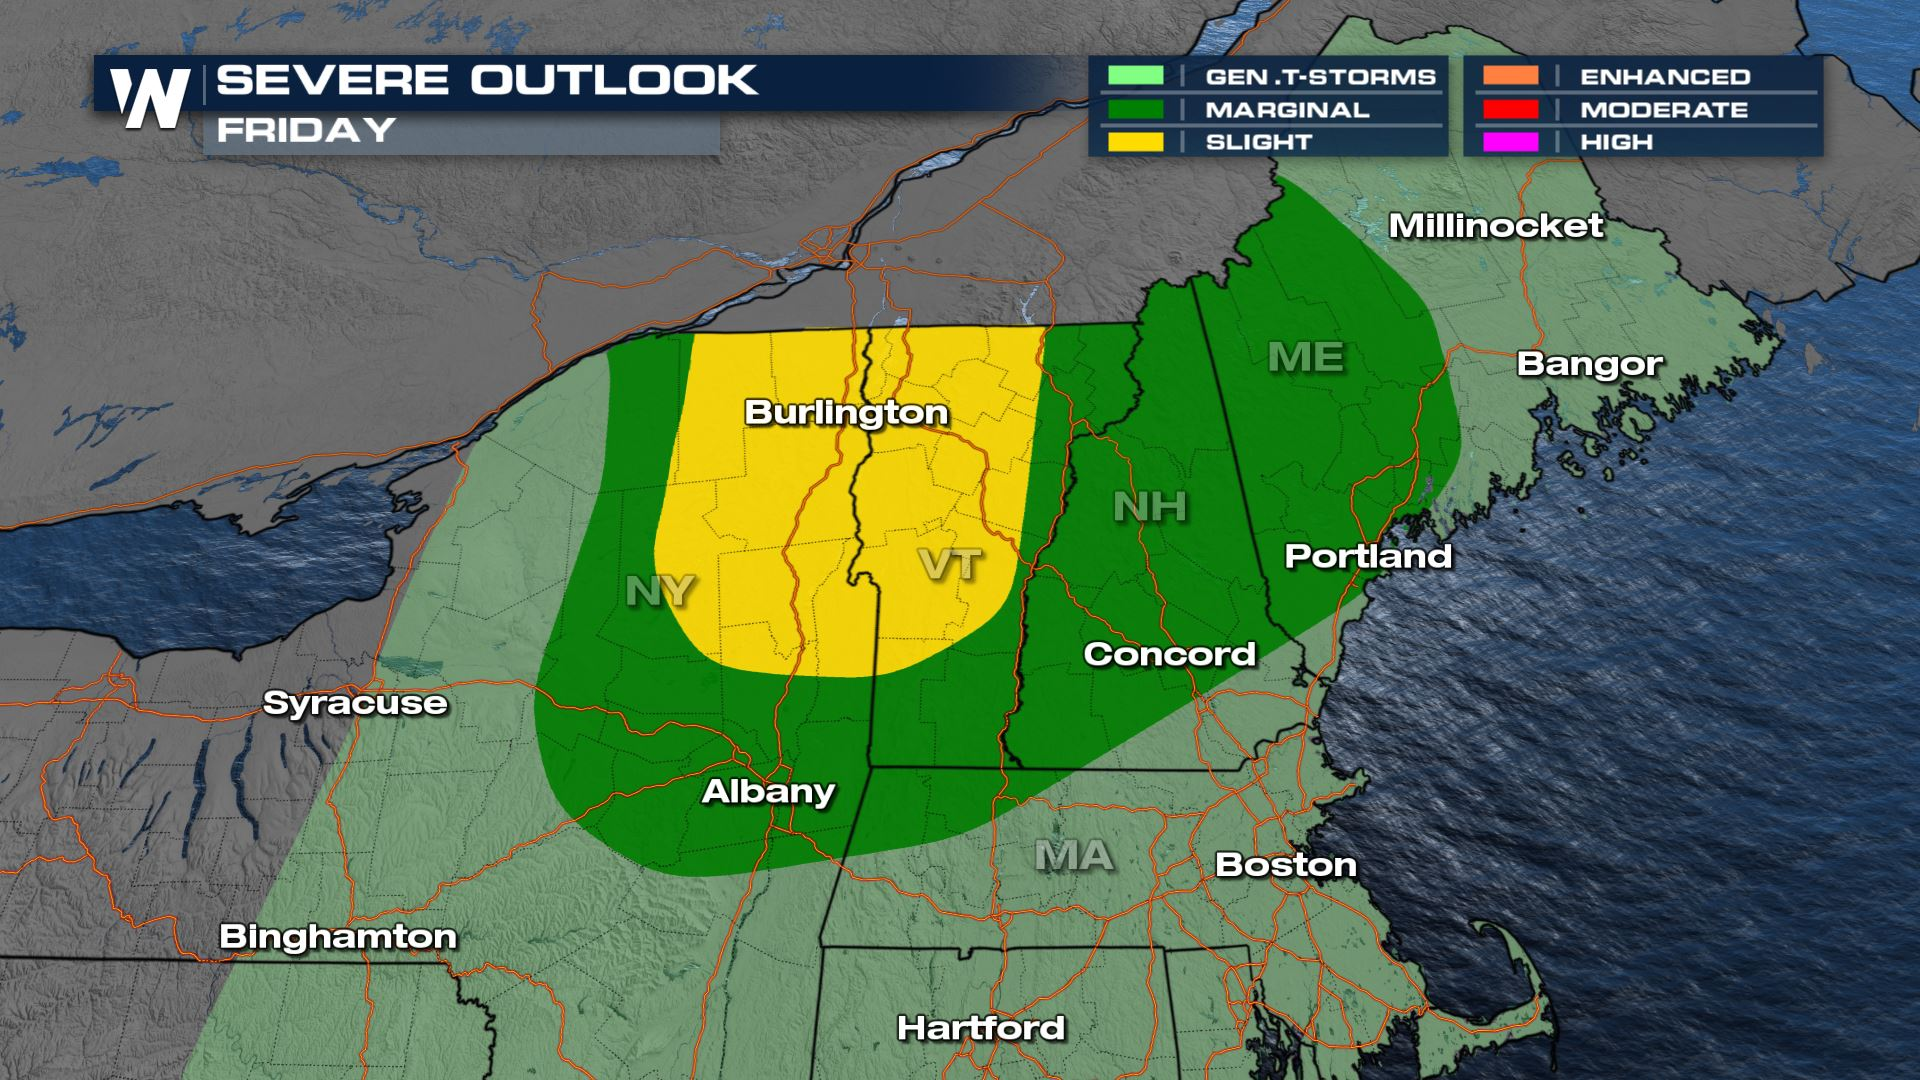 Damaging Wind & Tornado Potential in the Northeast Friday